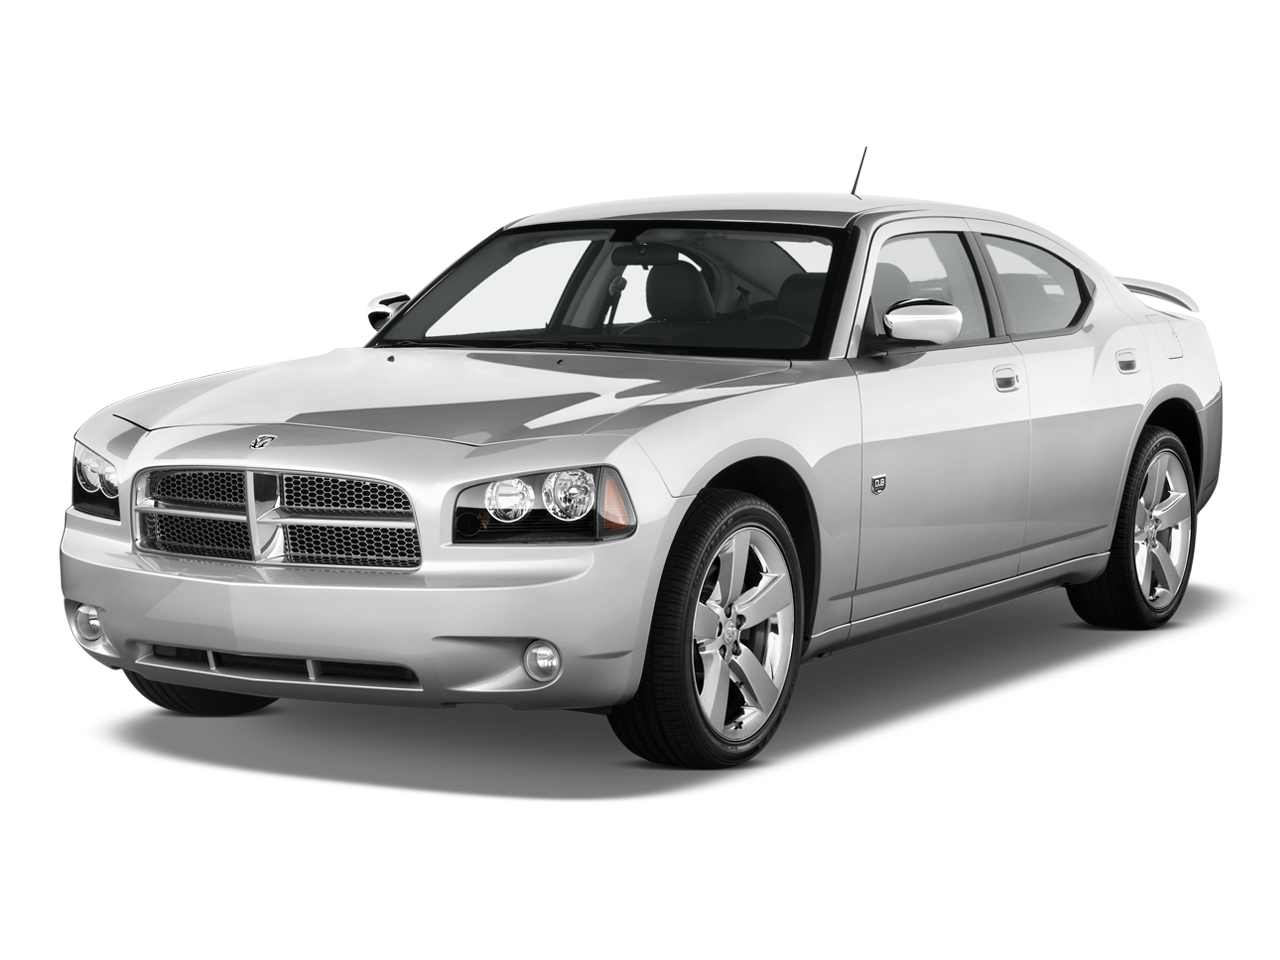 2009 dodge charger srt8 dodge sport coupe review. Black Bedroom Furniture Sets. Home Design Ideas